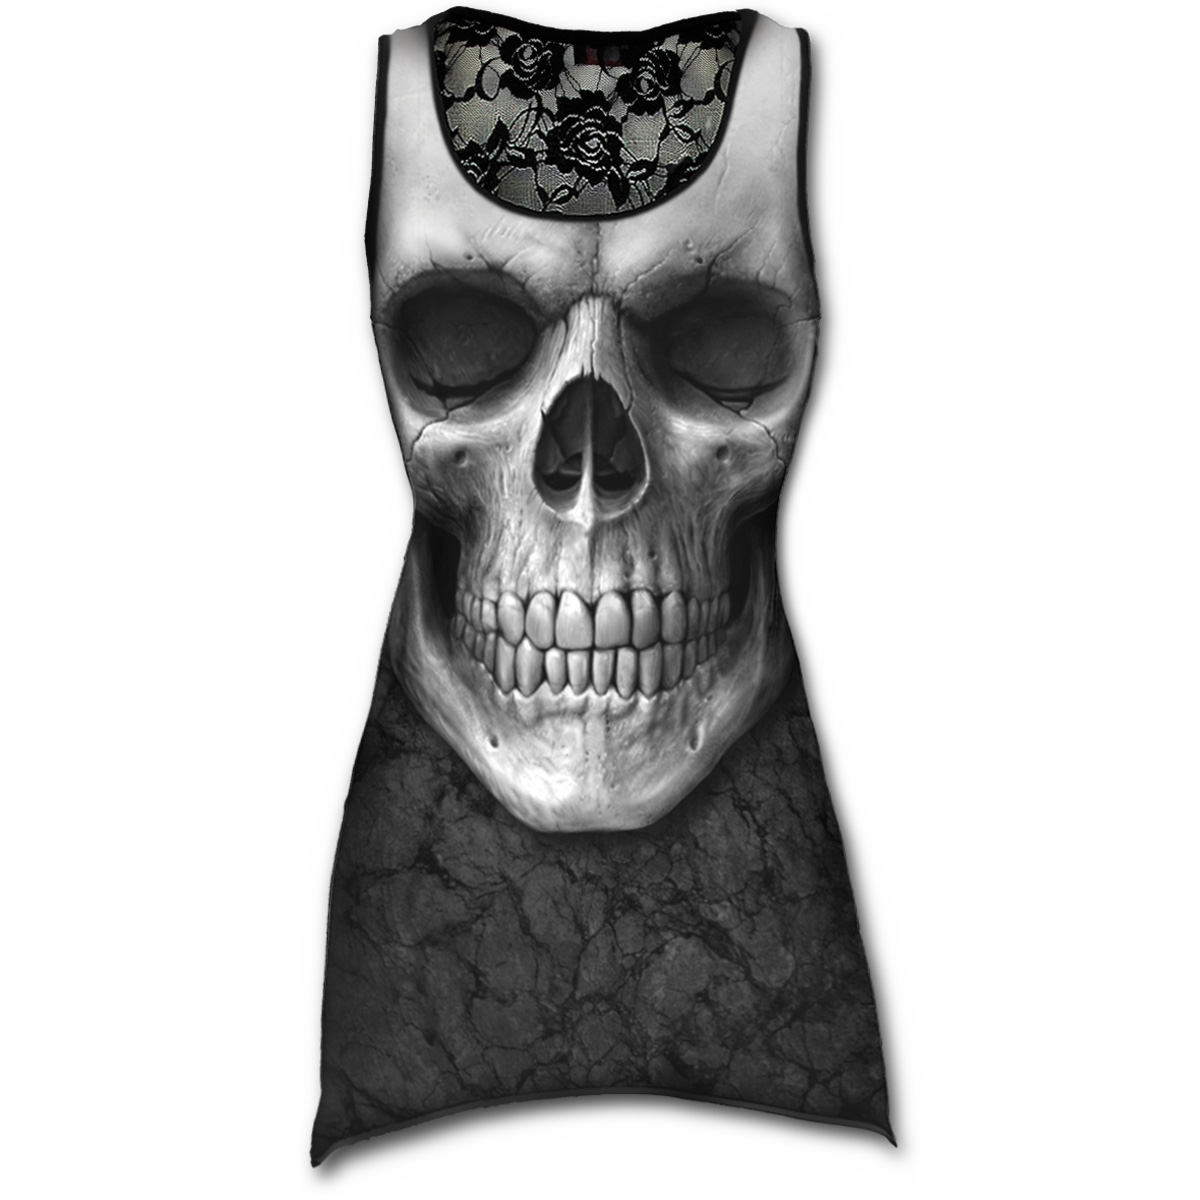 SPIRAL-DIRECT-Ladies-Black-Goth-SOLEMN-SKULL-Lace-Vest-Top-All-Sizes thumbnail 3